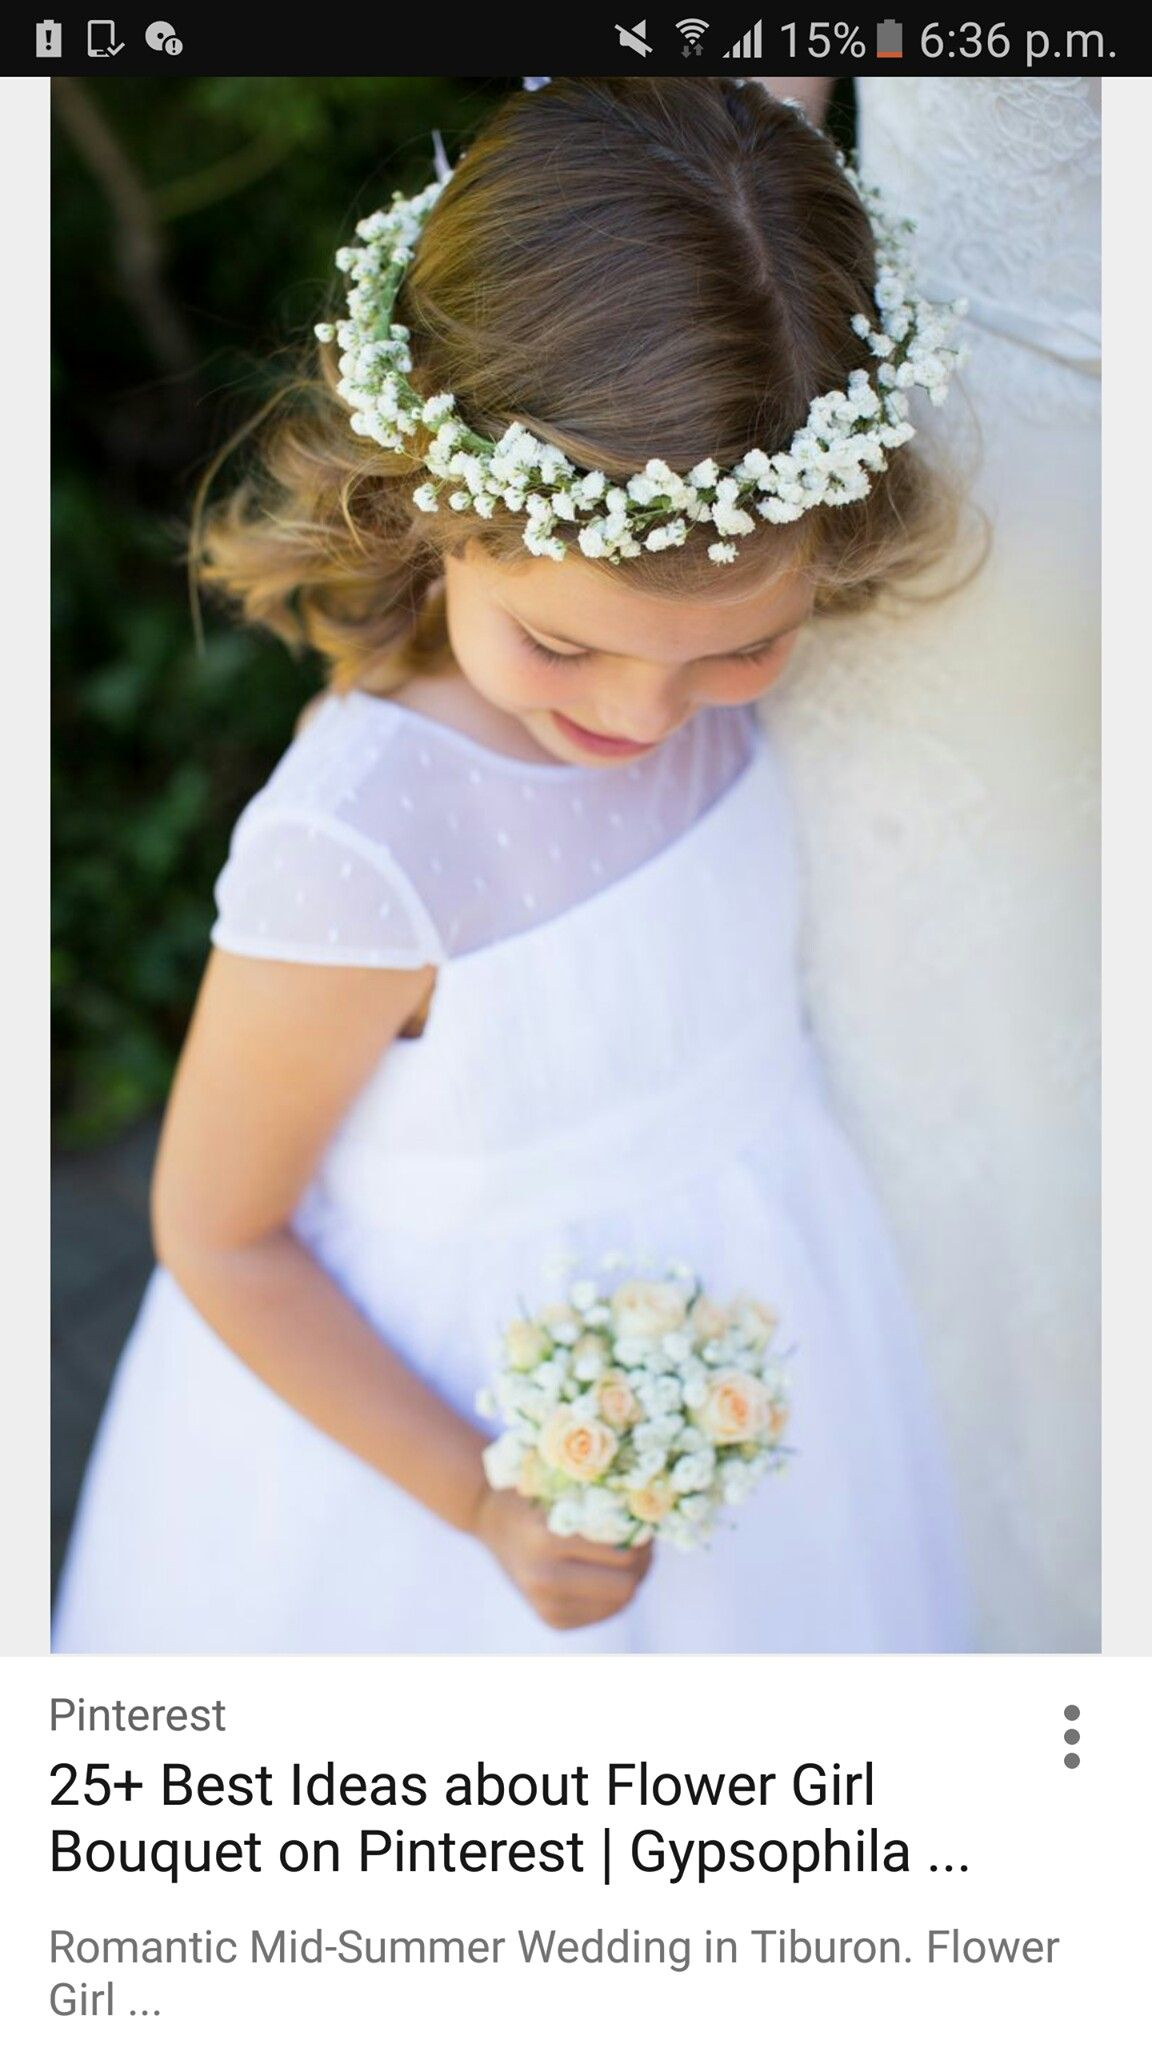 Pin by quynh on birthday ideas pinterest flower wedding and girl with flowers bouquet wallpapers hd desktop wallpapers izmirmasajfo